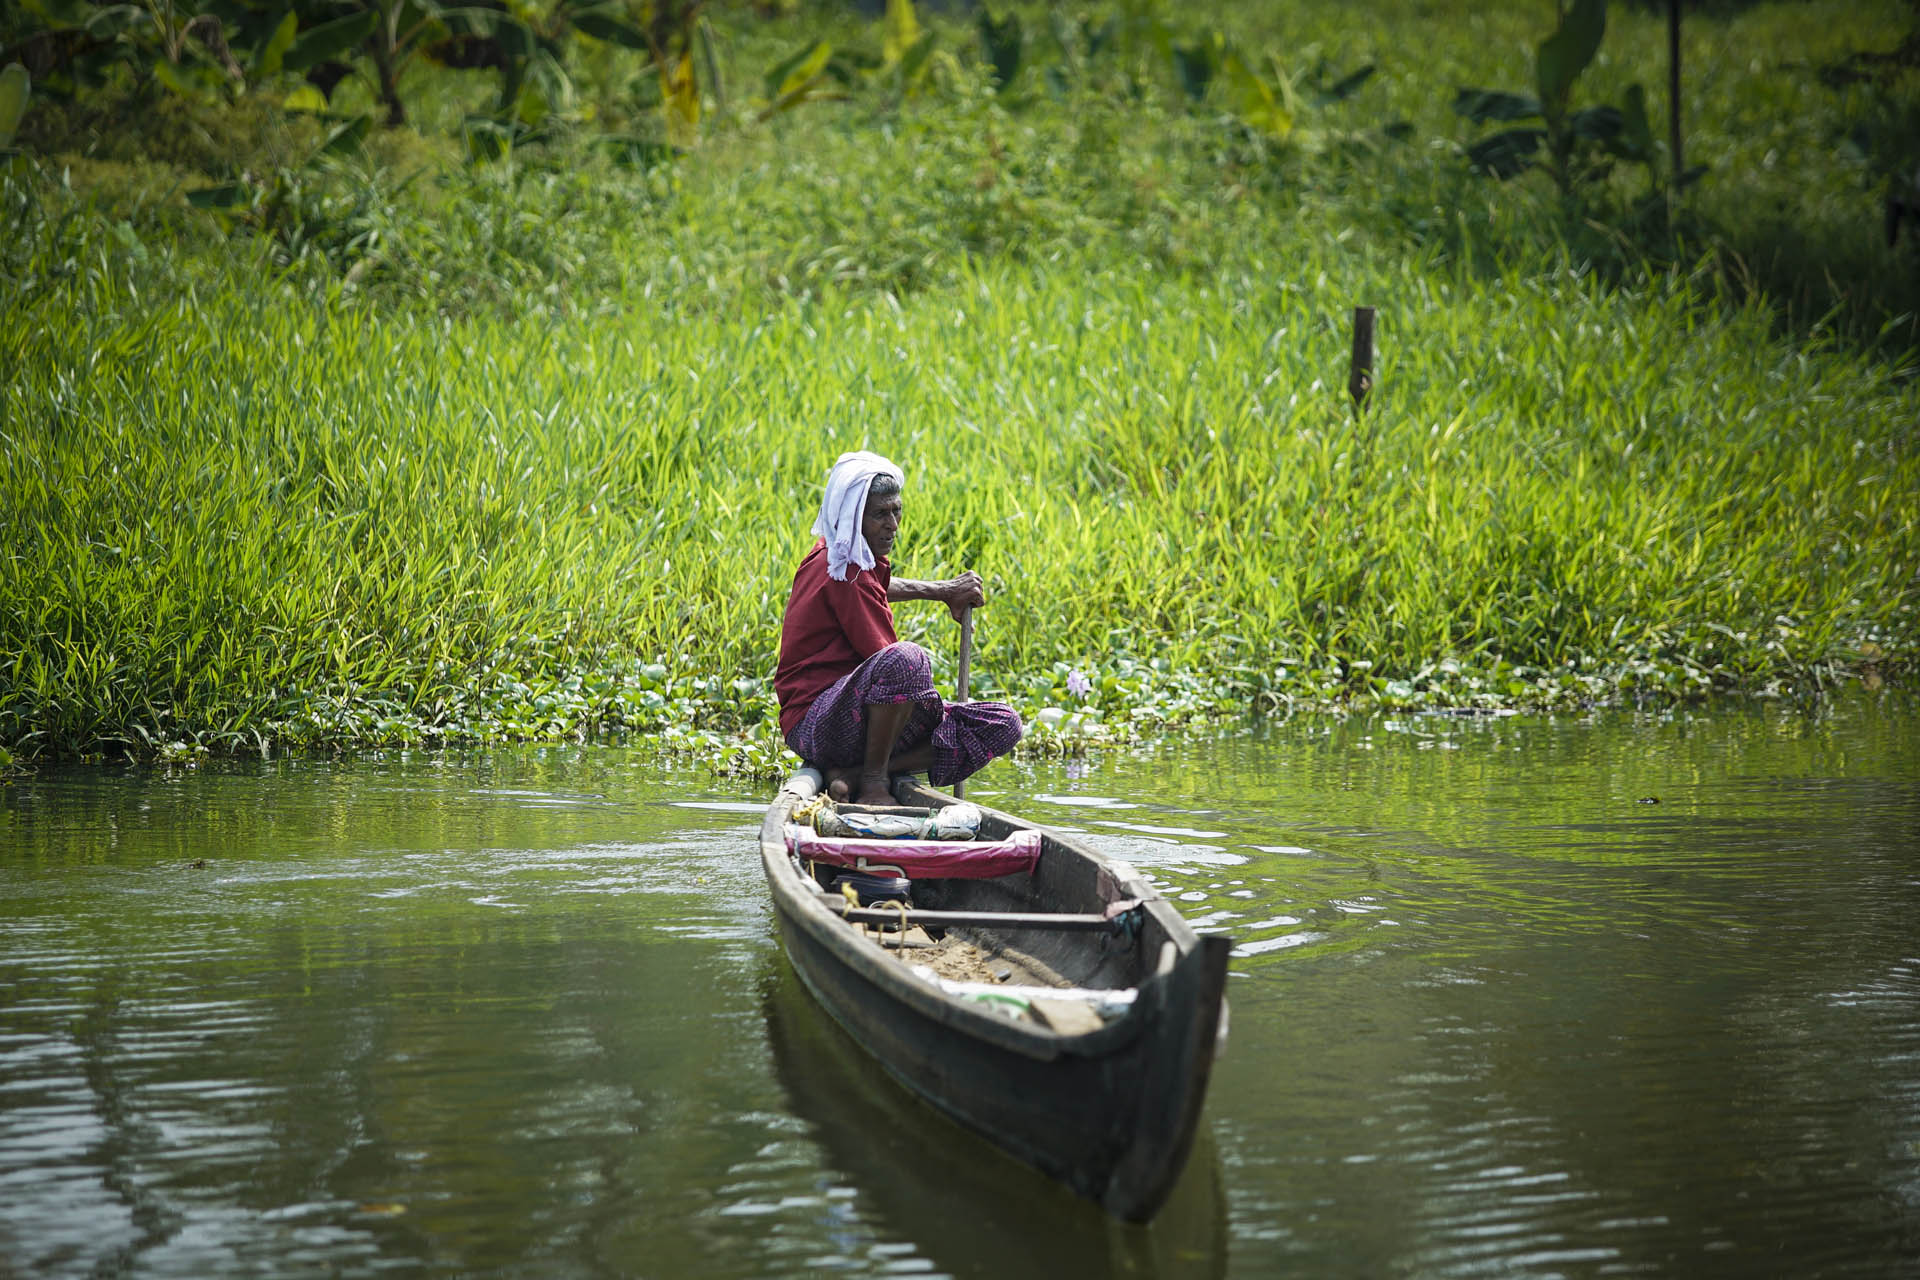 Fisherman at the Backwaters, Kerala